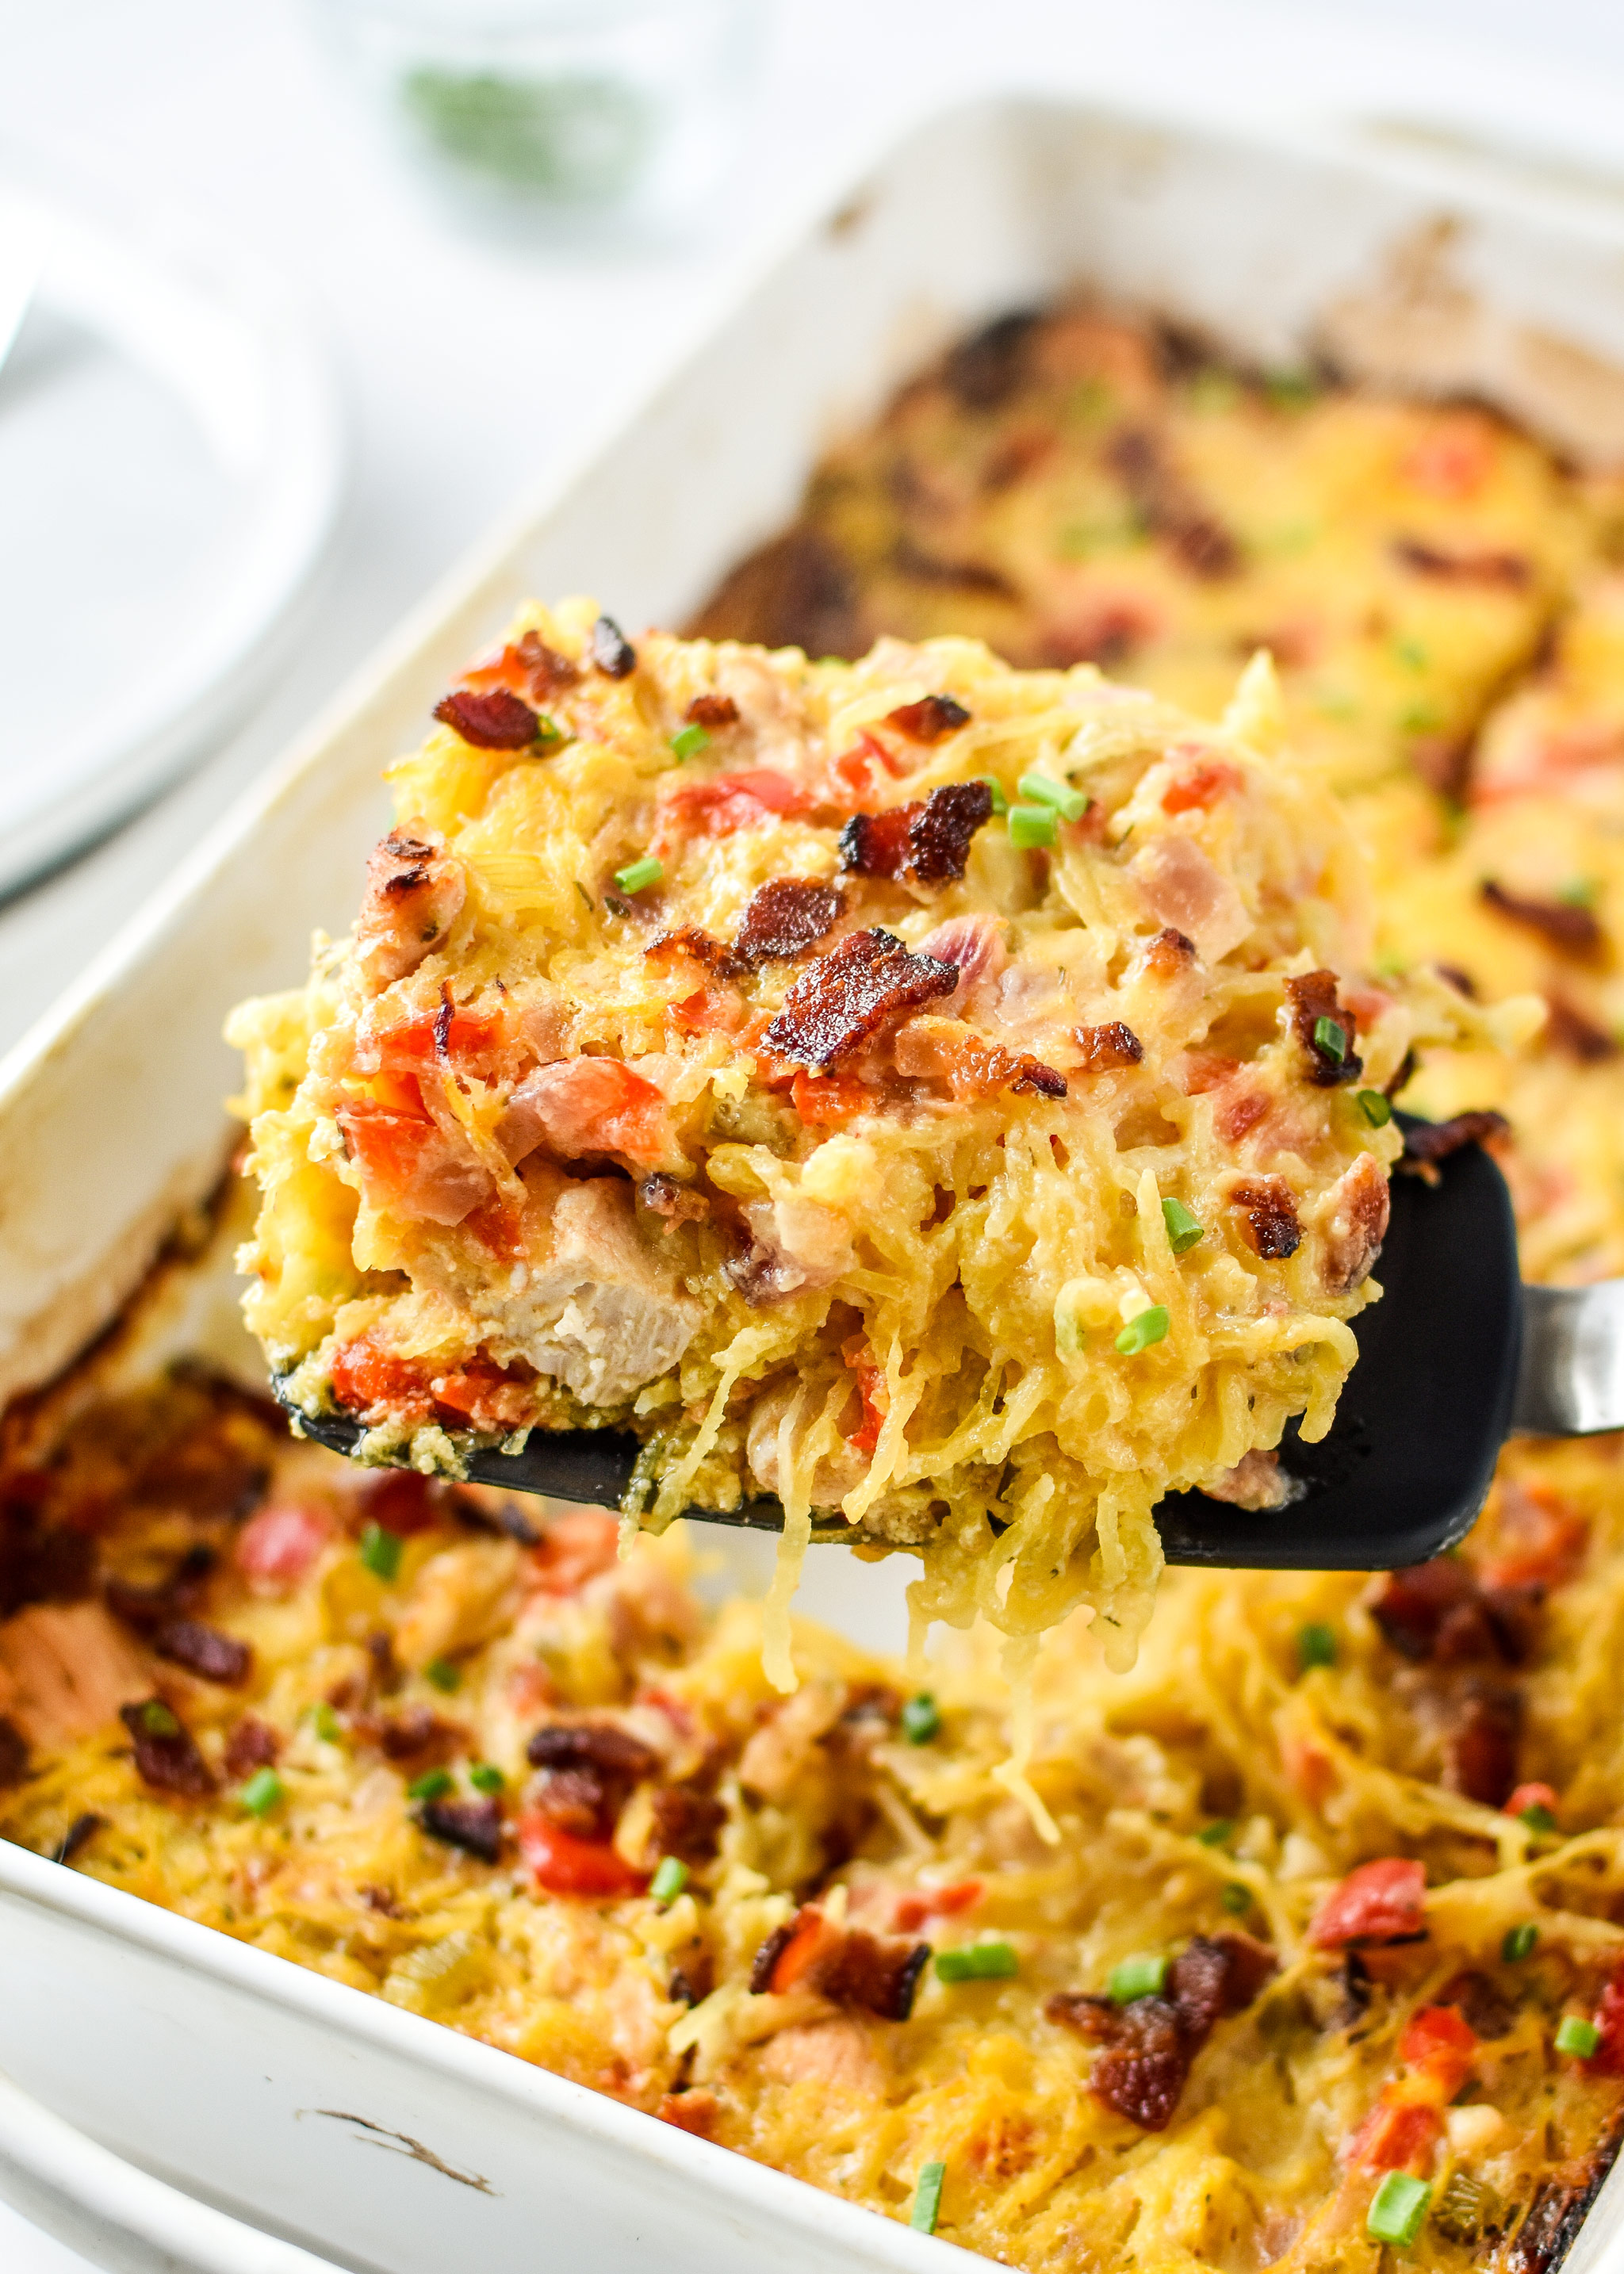 Whole30 Chicken Bacon Ranch casserole being served from a casserole dish.